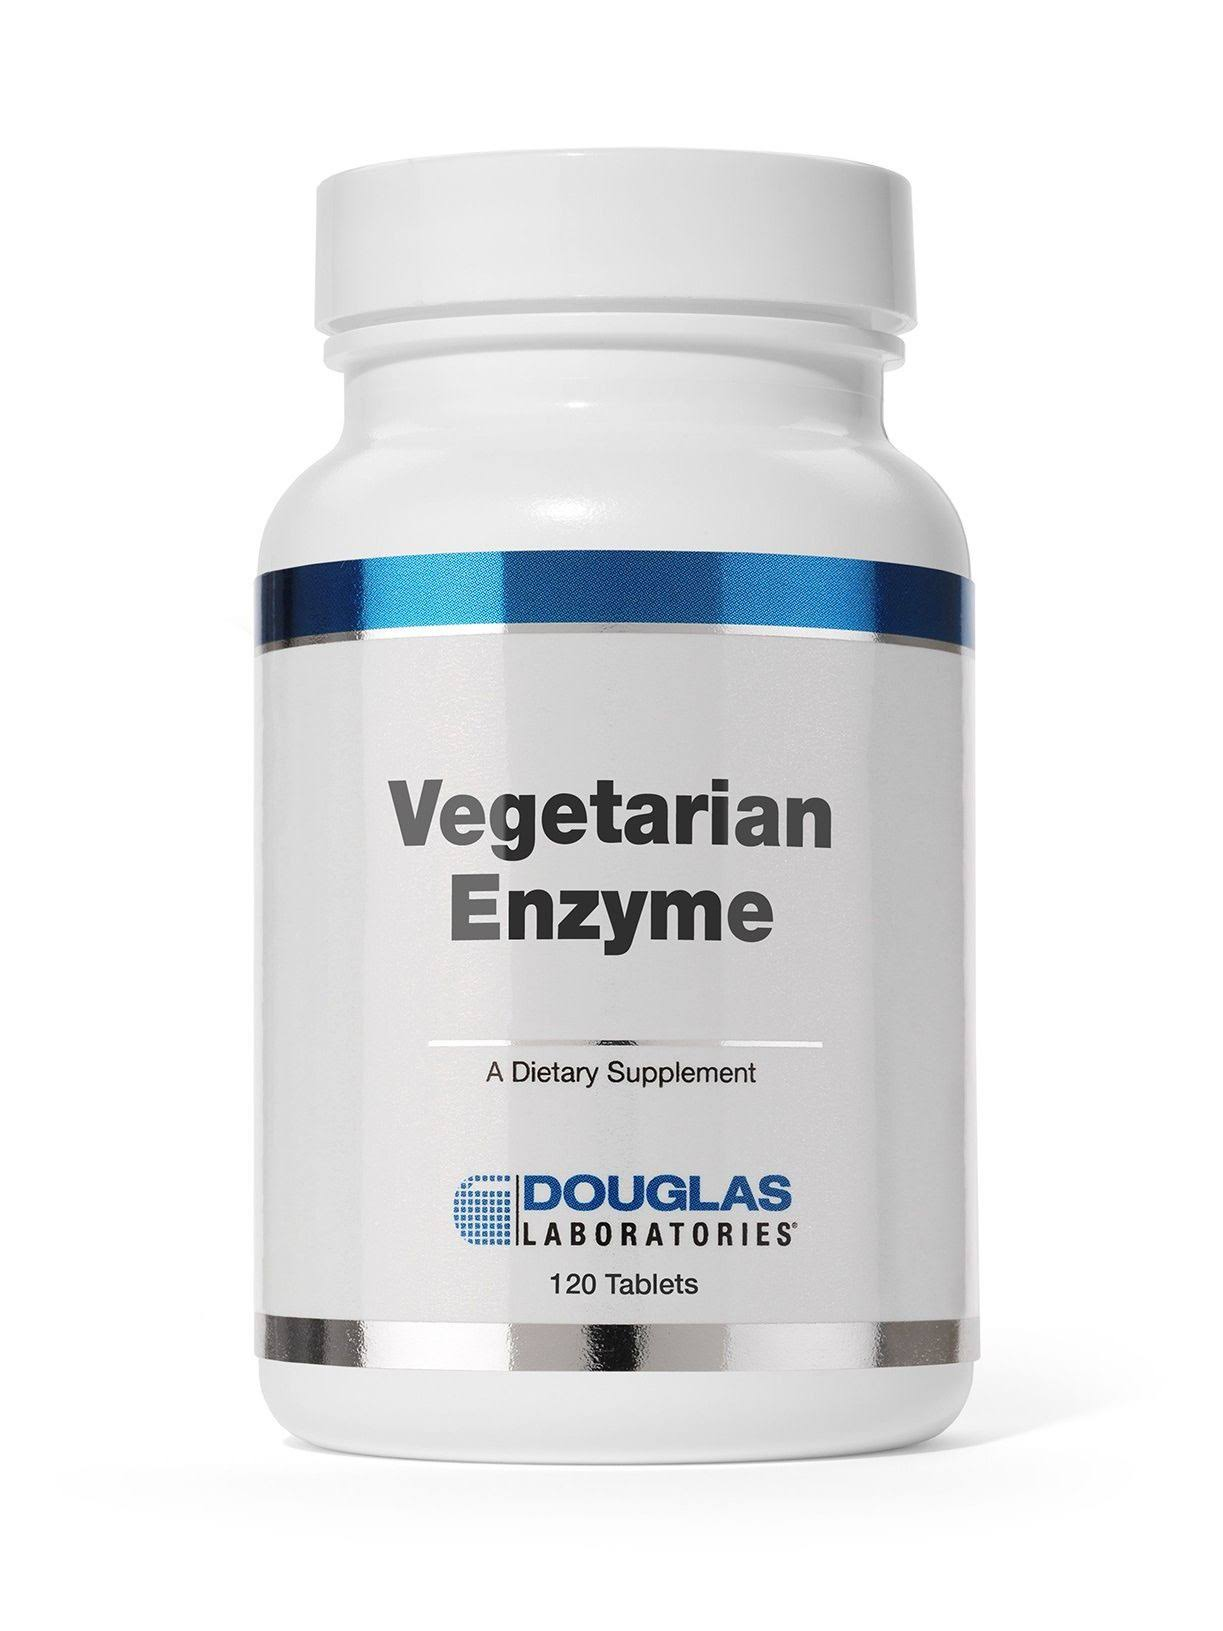 Douglas Laboratories Vegetarian Enzyme Supplement - 120 Tablets